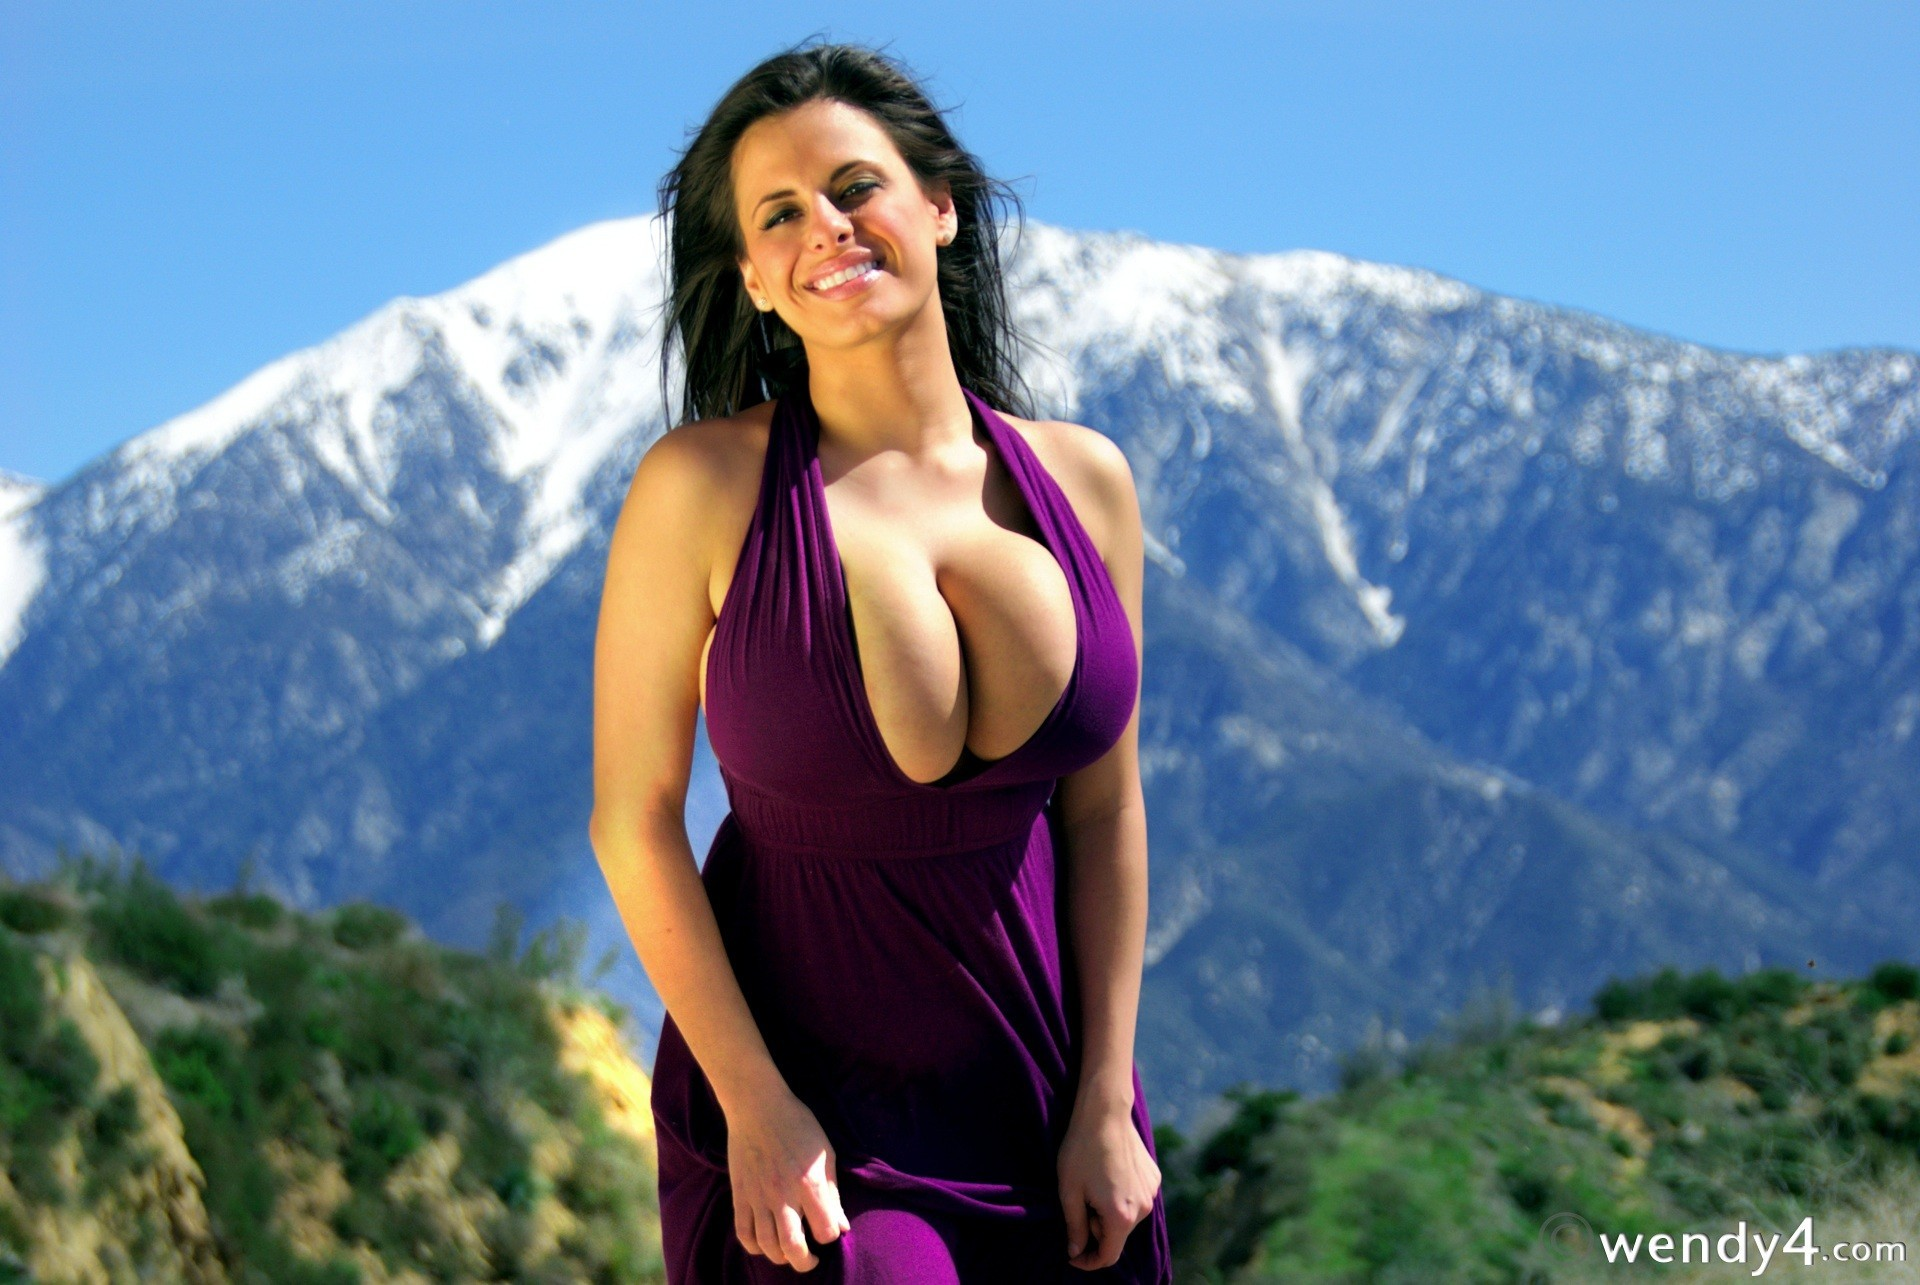 brunettes woman Mountains dress HD Wallpaper